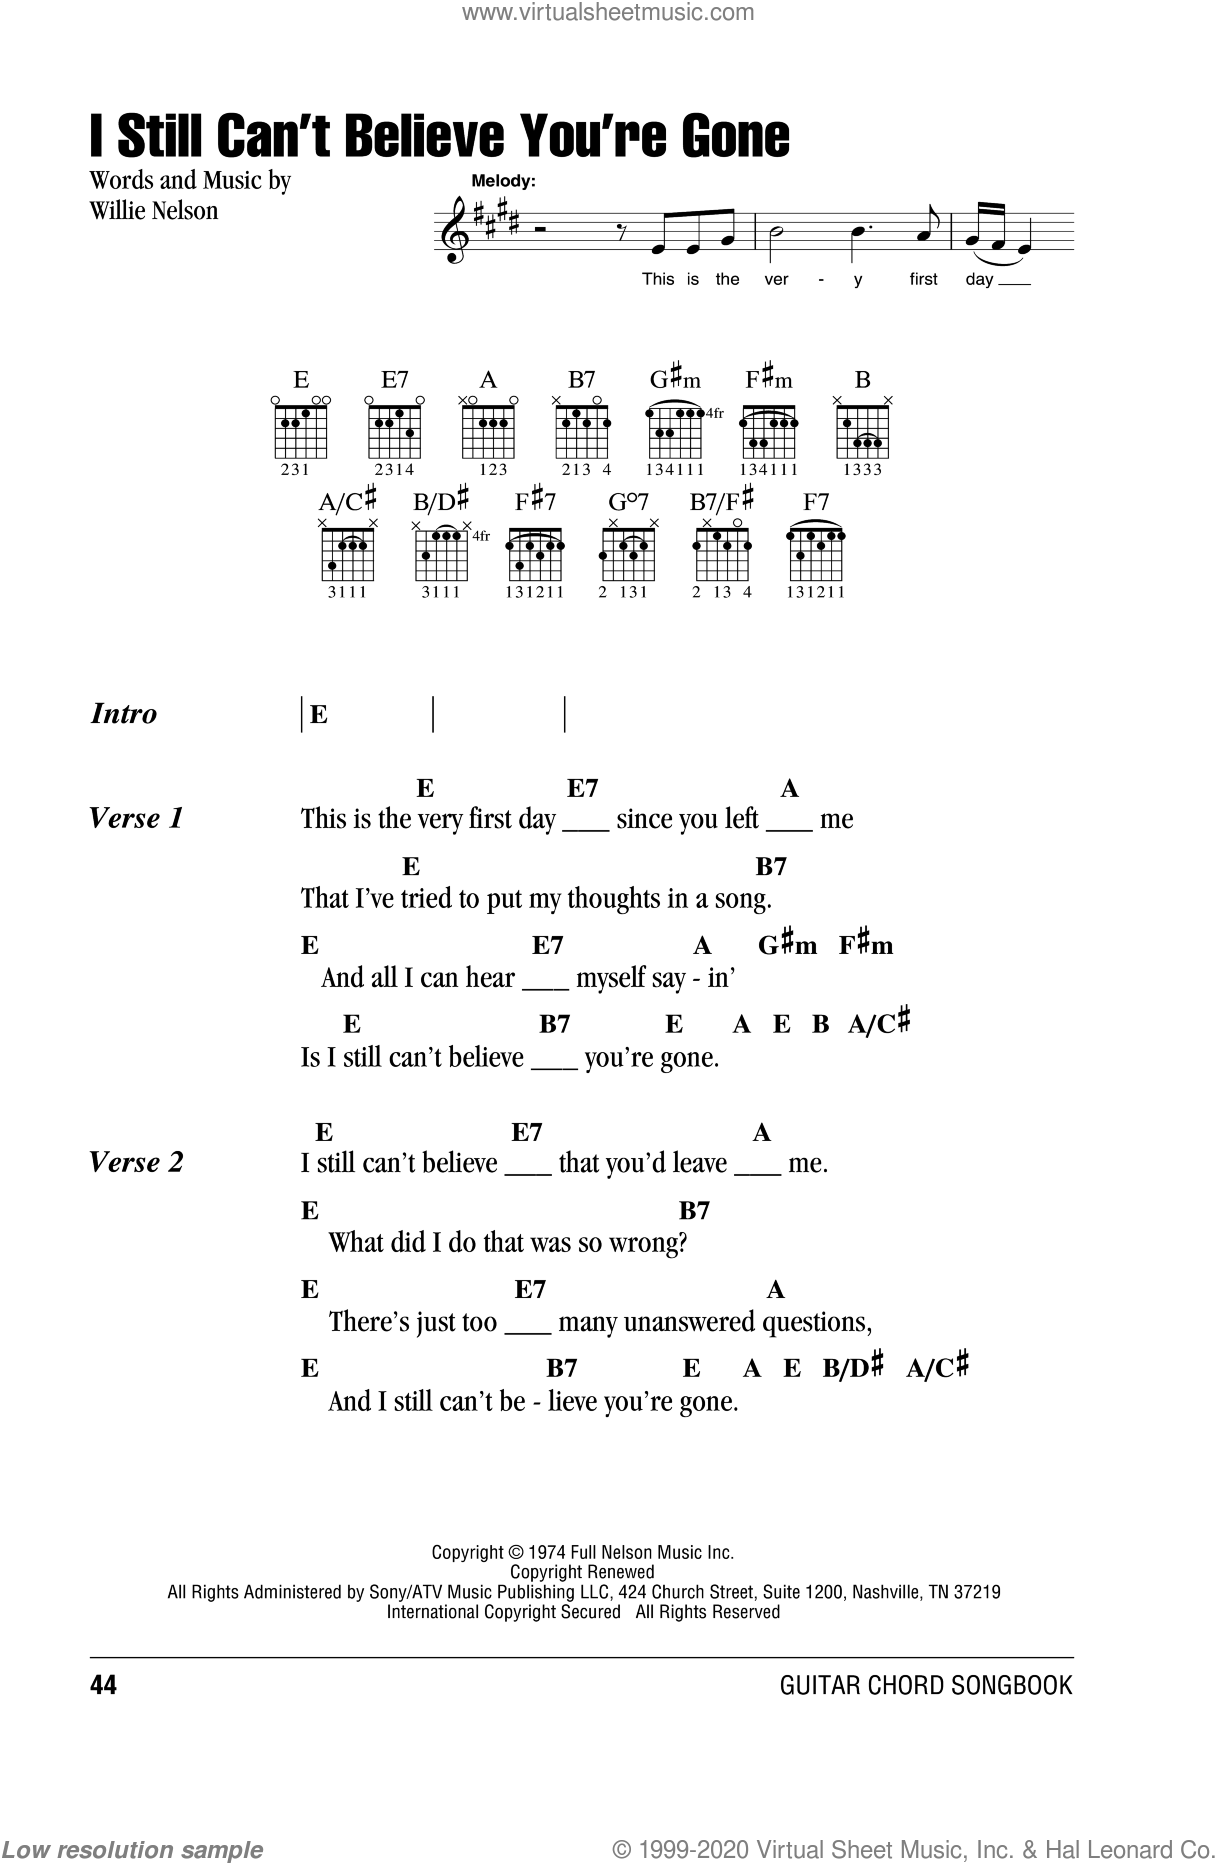 I Still Can't Believe You're Gone sheet music for guitar (chords) by Willie Nelson, intermediate. Score Image Preview.